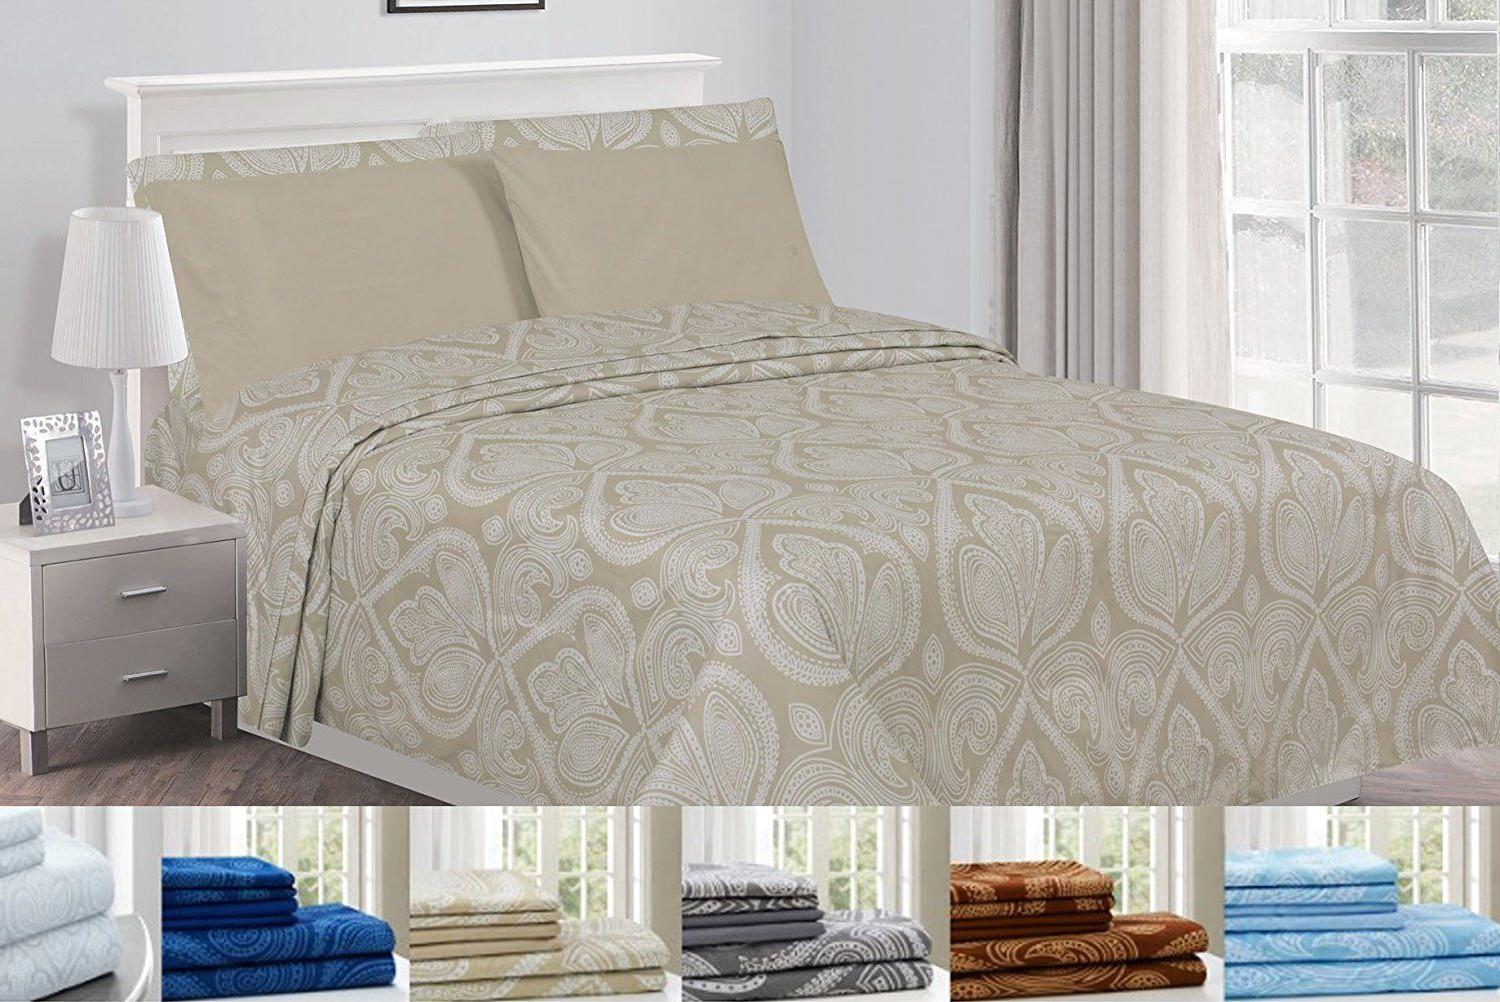 6 Piece: Egyptian Paisley Sheet Set Comfort Multi Colors